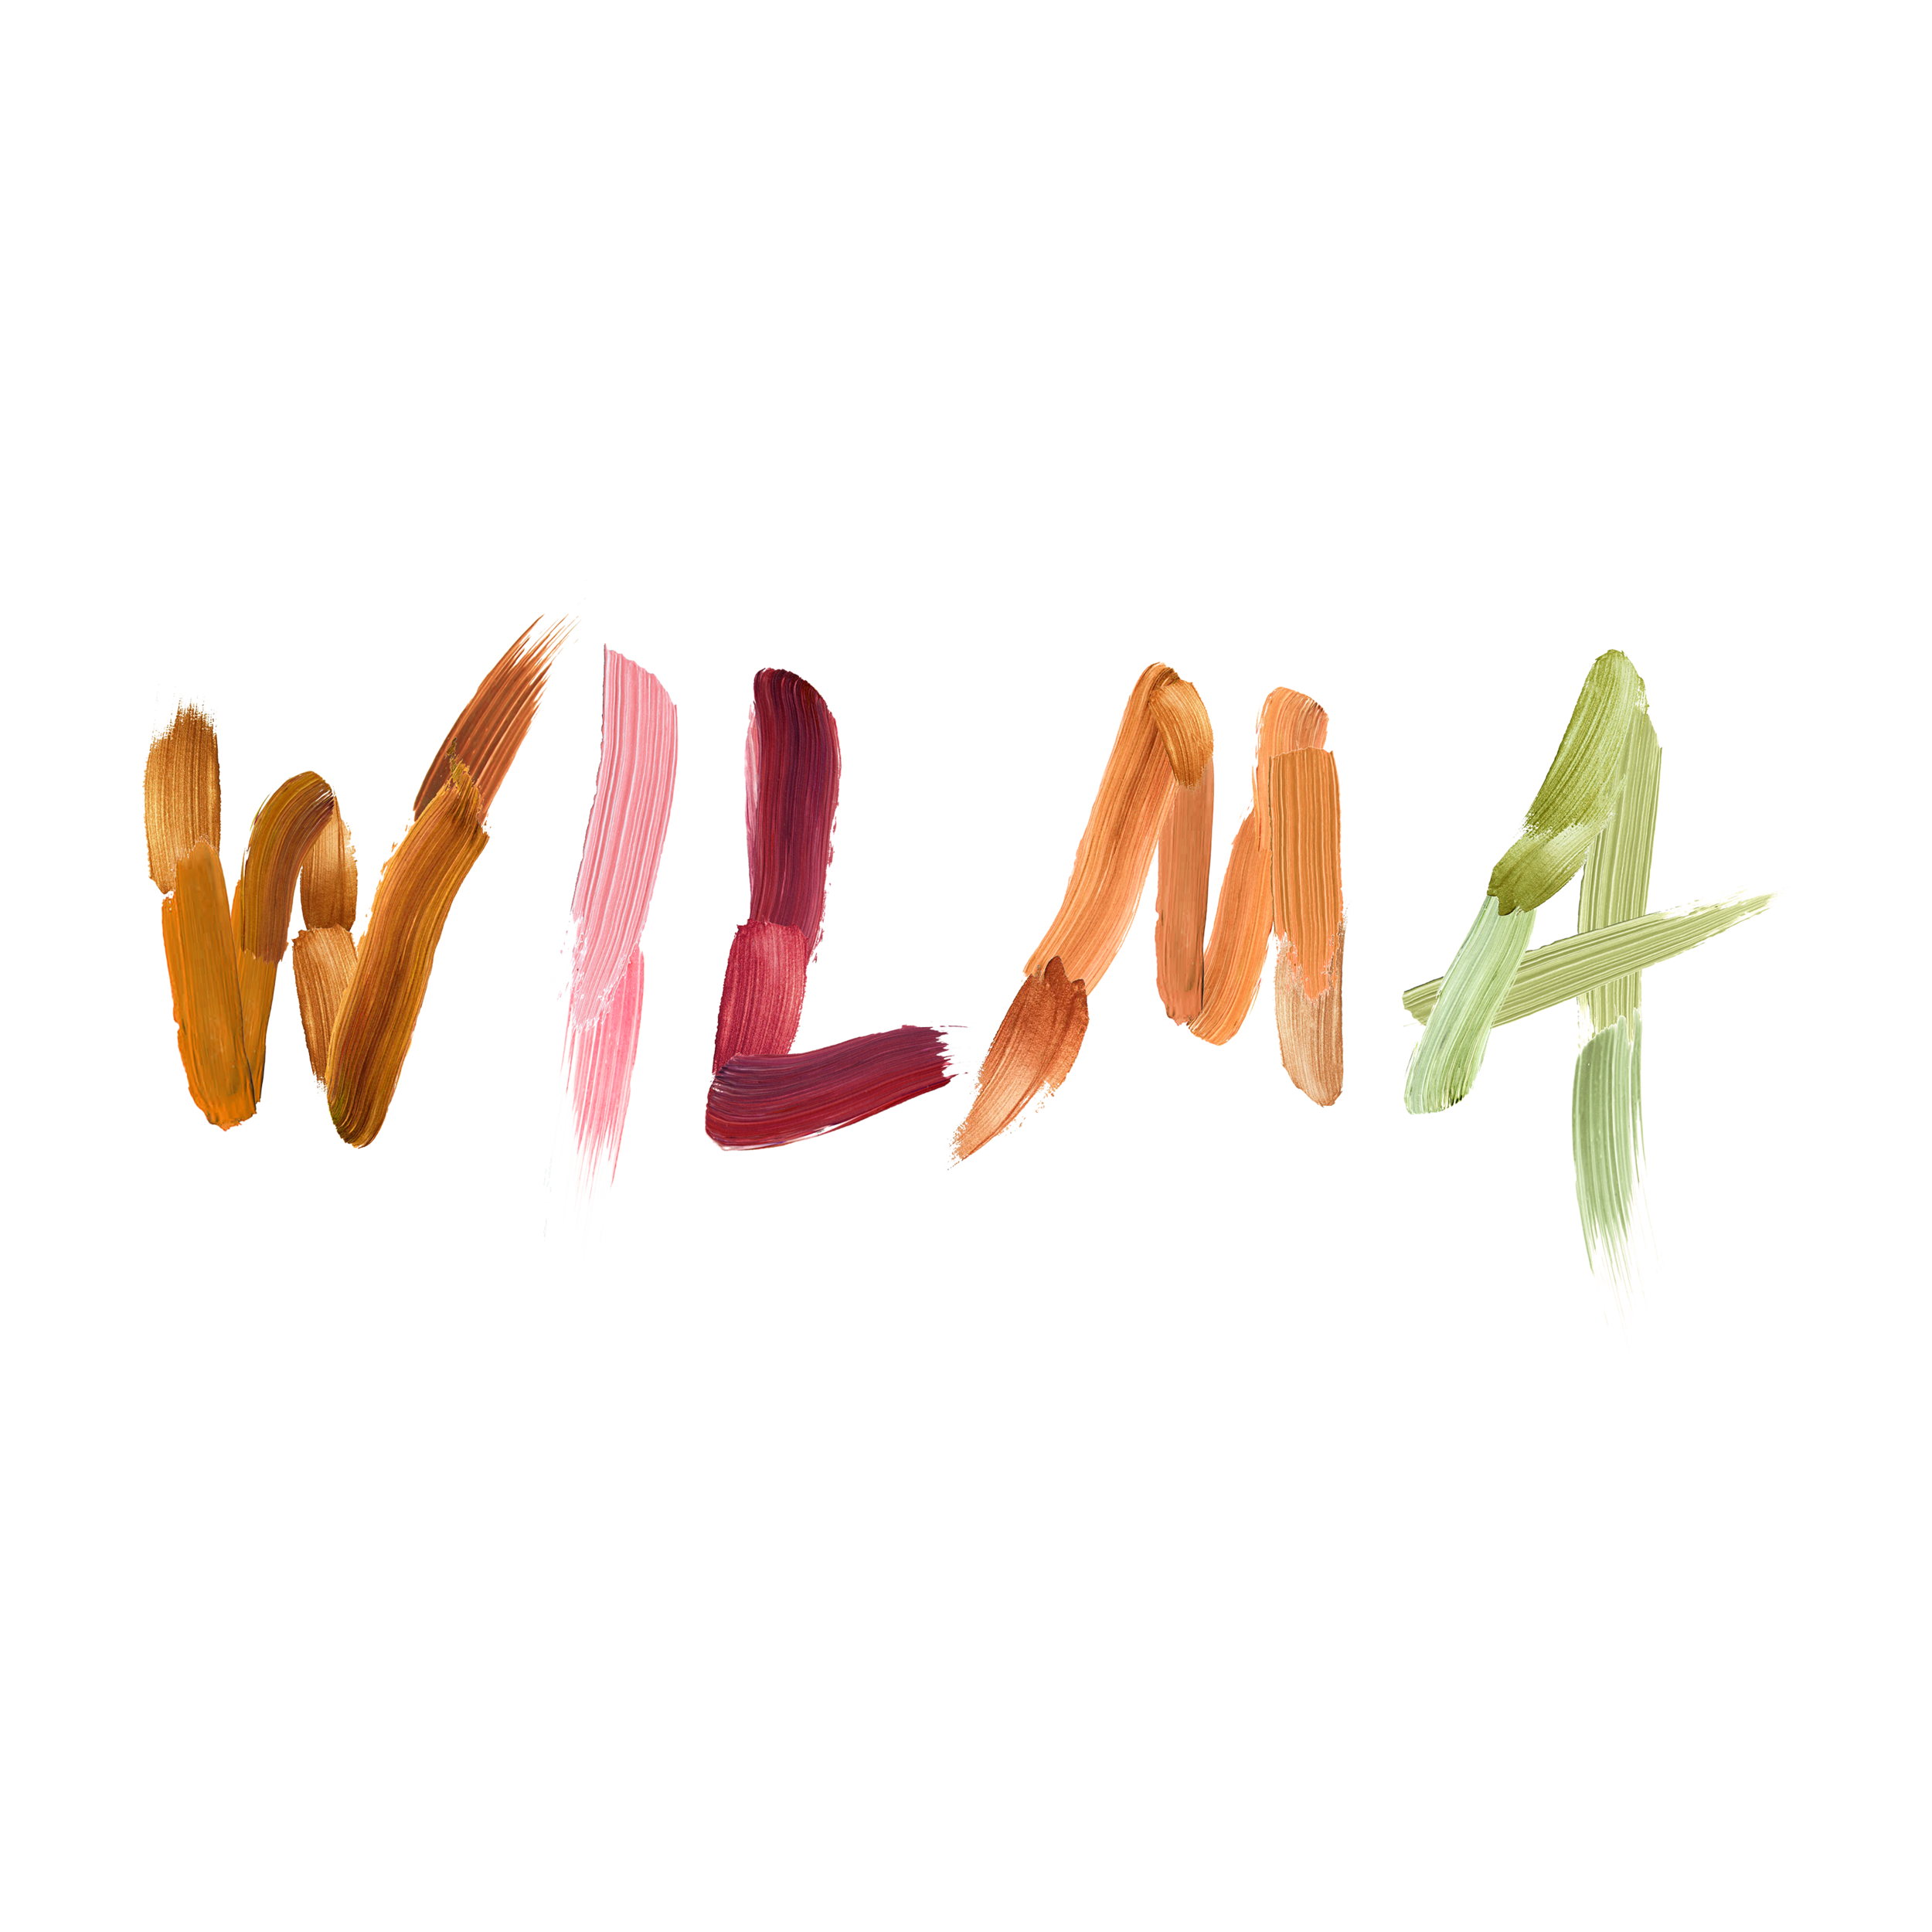 wilma (1).png